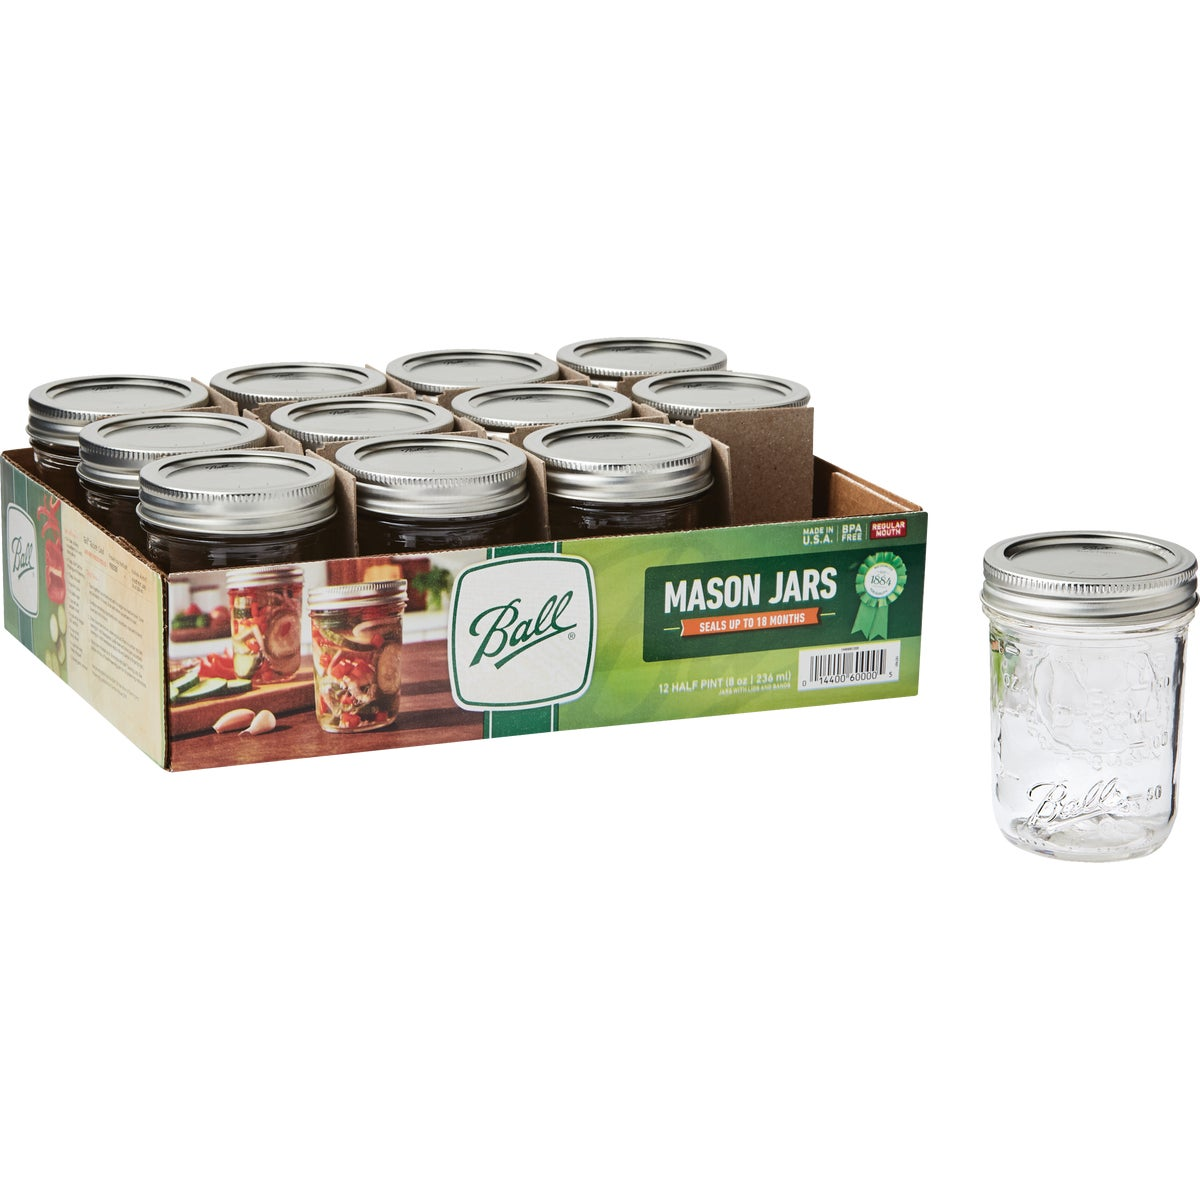 12 1/2PT REG MASON JARS - 60000 by Jarden Home Brands